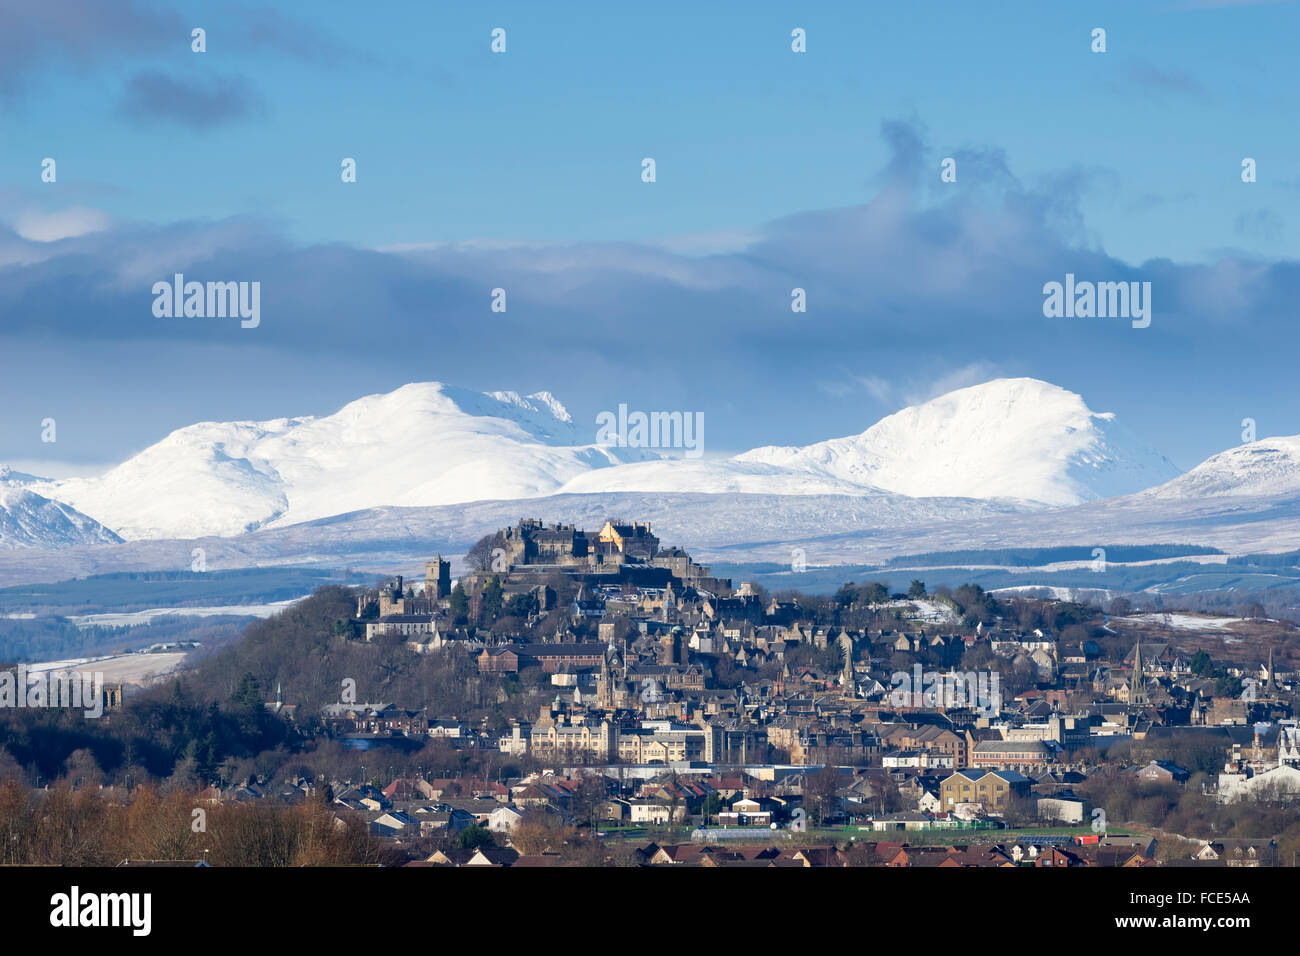 Stirling Castle and snow covered mountains (Stuc a Chroin & Ben Vorlich), Stirling City, Scotland, UK - Stock Image